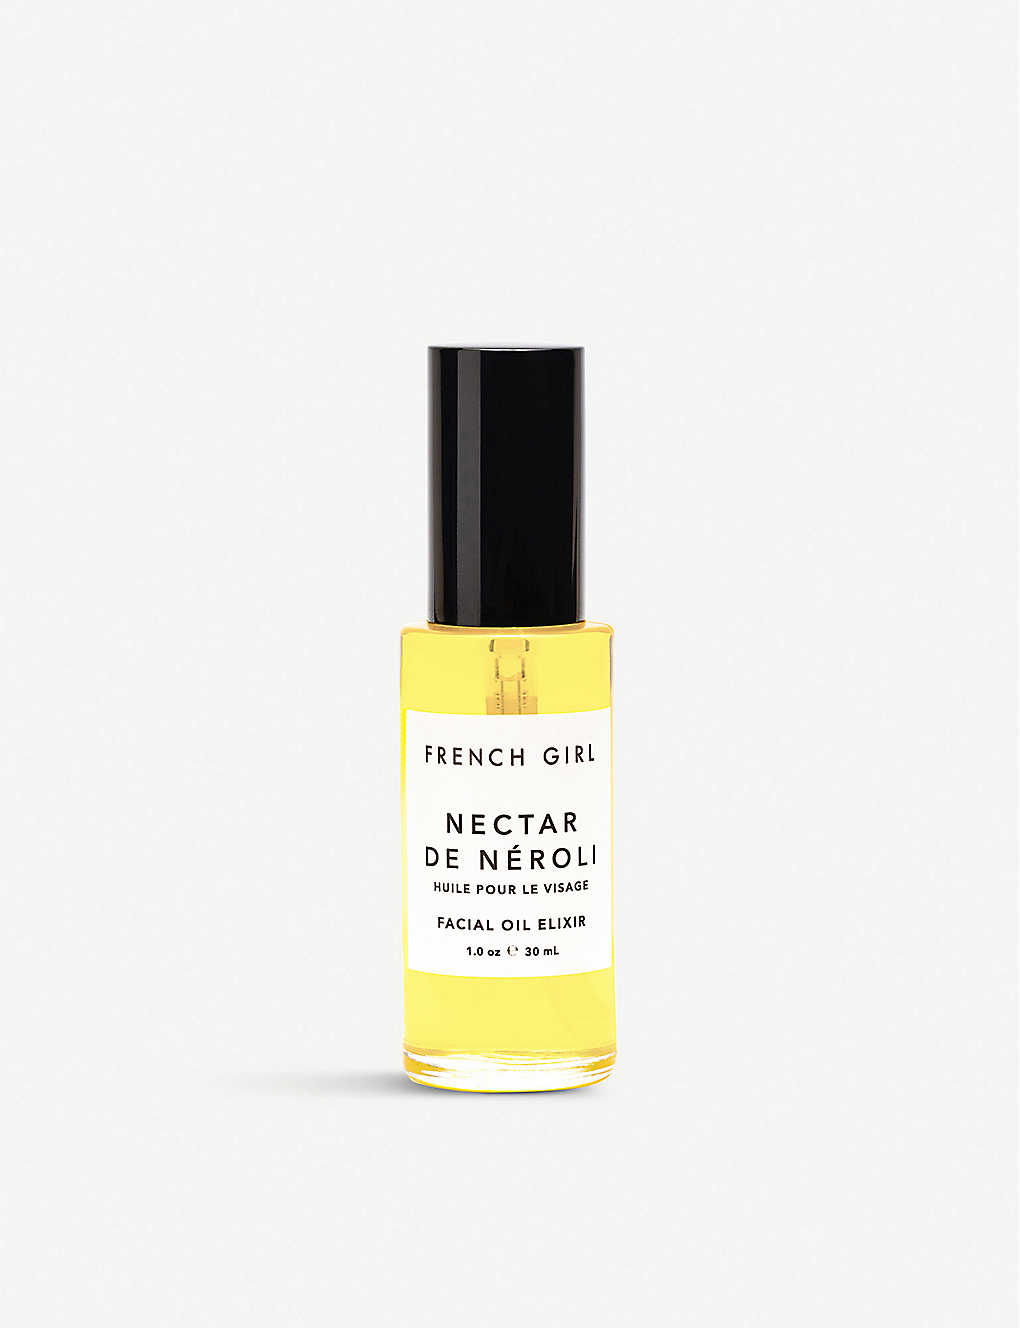 FRENCH GIRL: Nectar de Néroli facial oil elixir 30ml